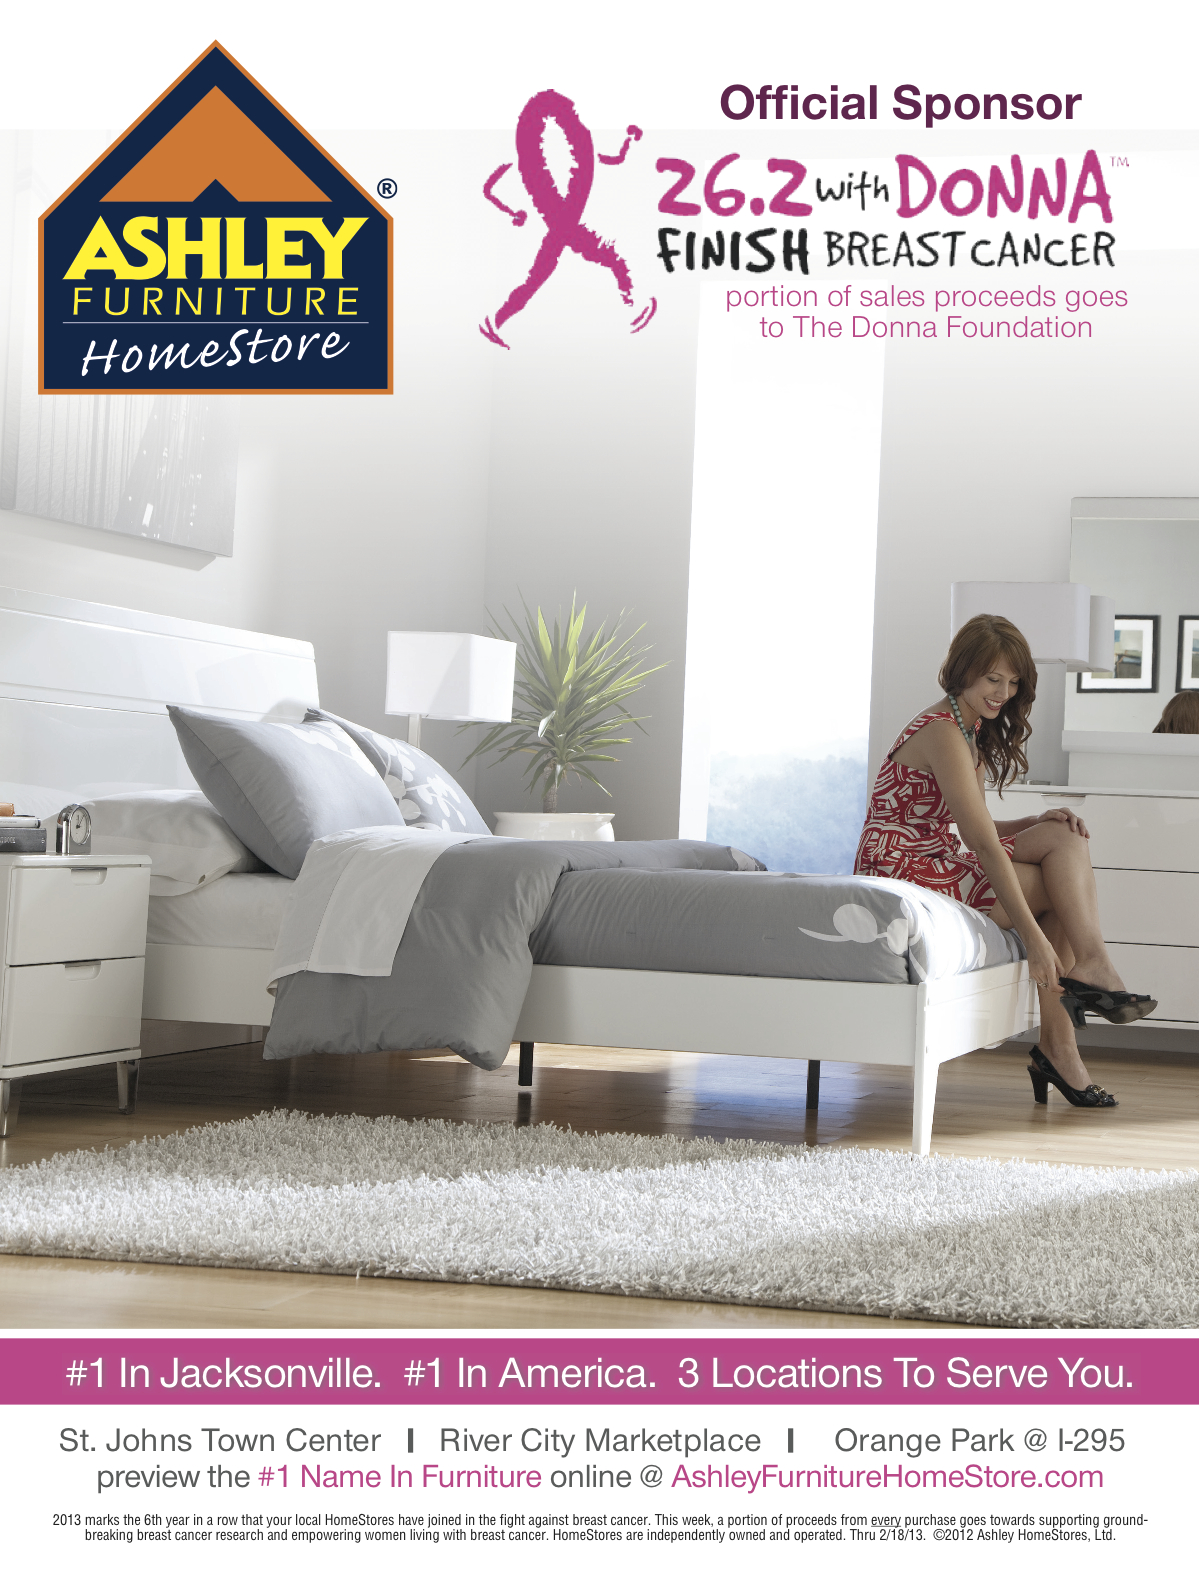 Ashley Furniture Homestore Provides Additional Incentives To Support